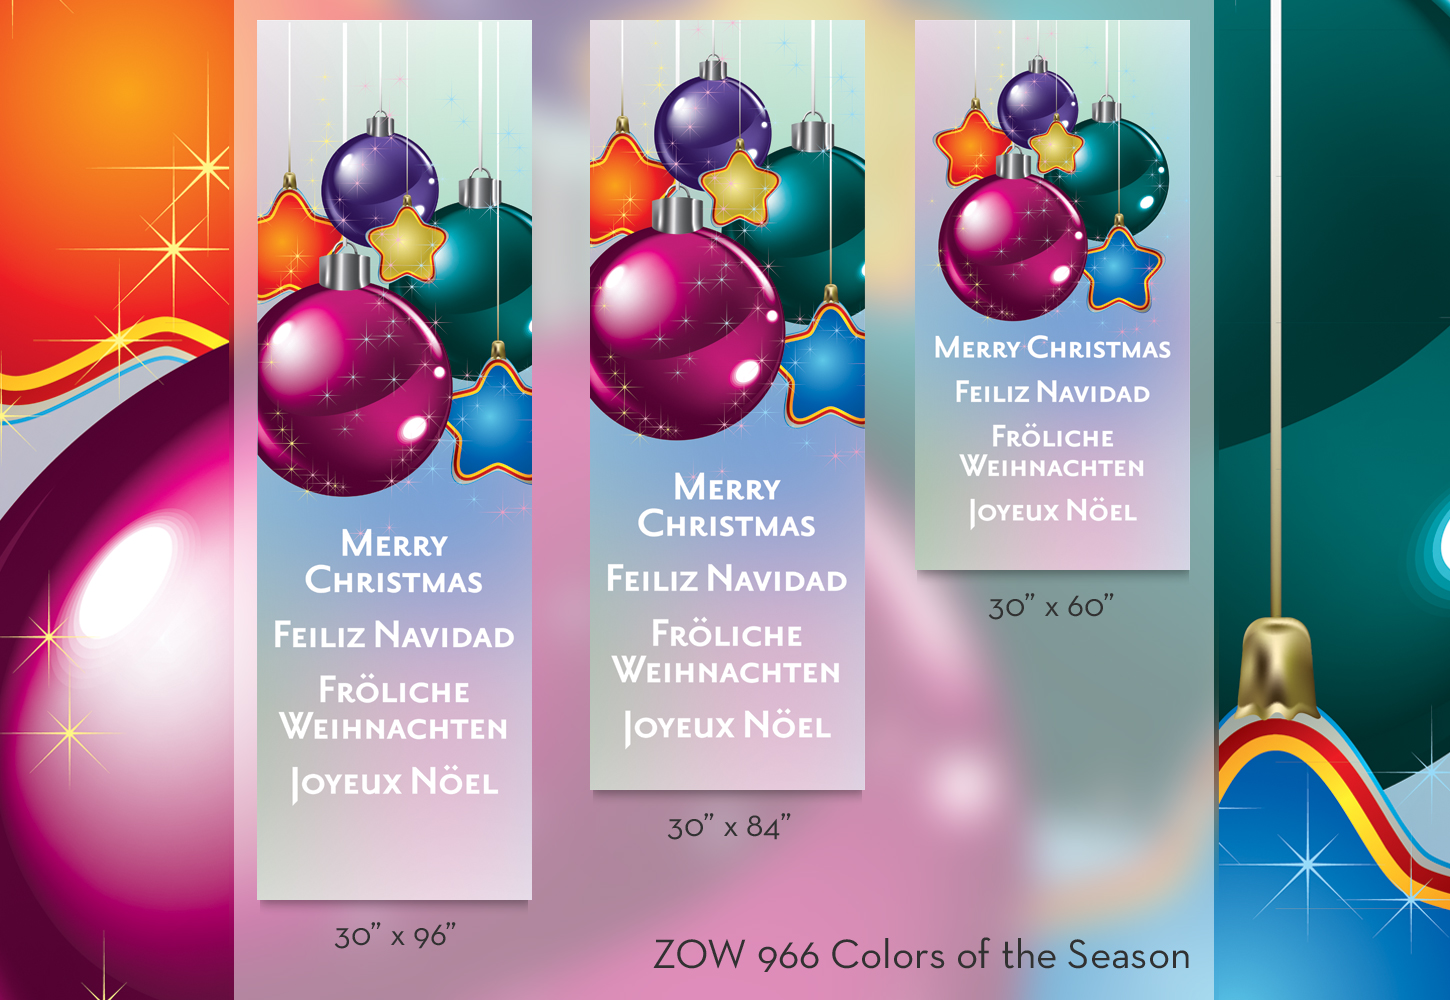 ZOW 966 Colors of the Season